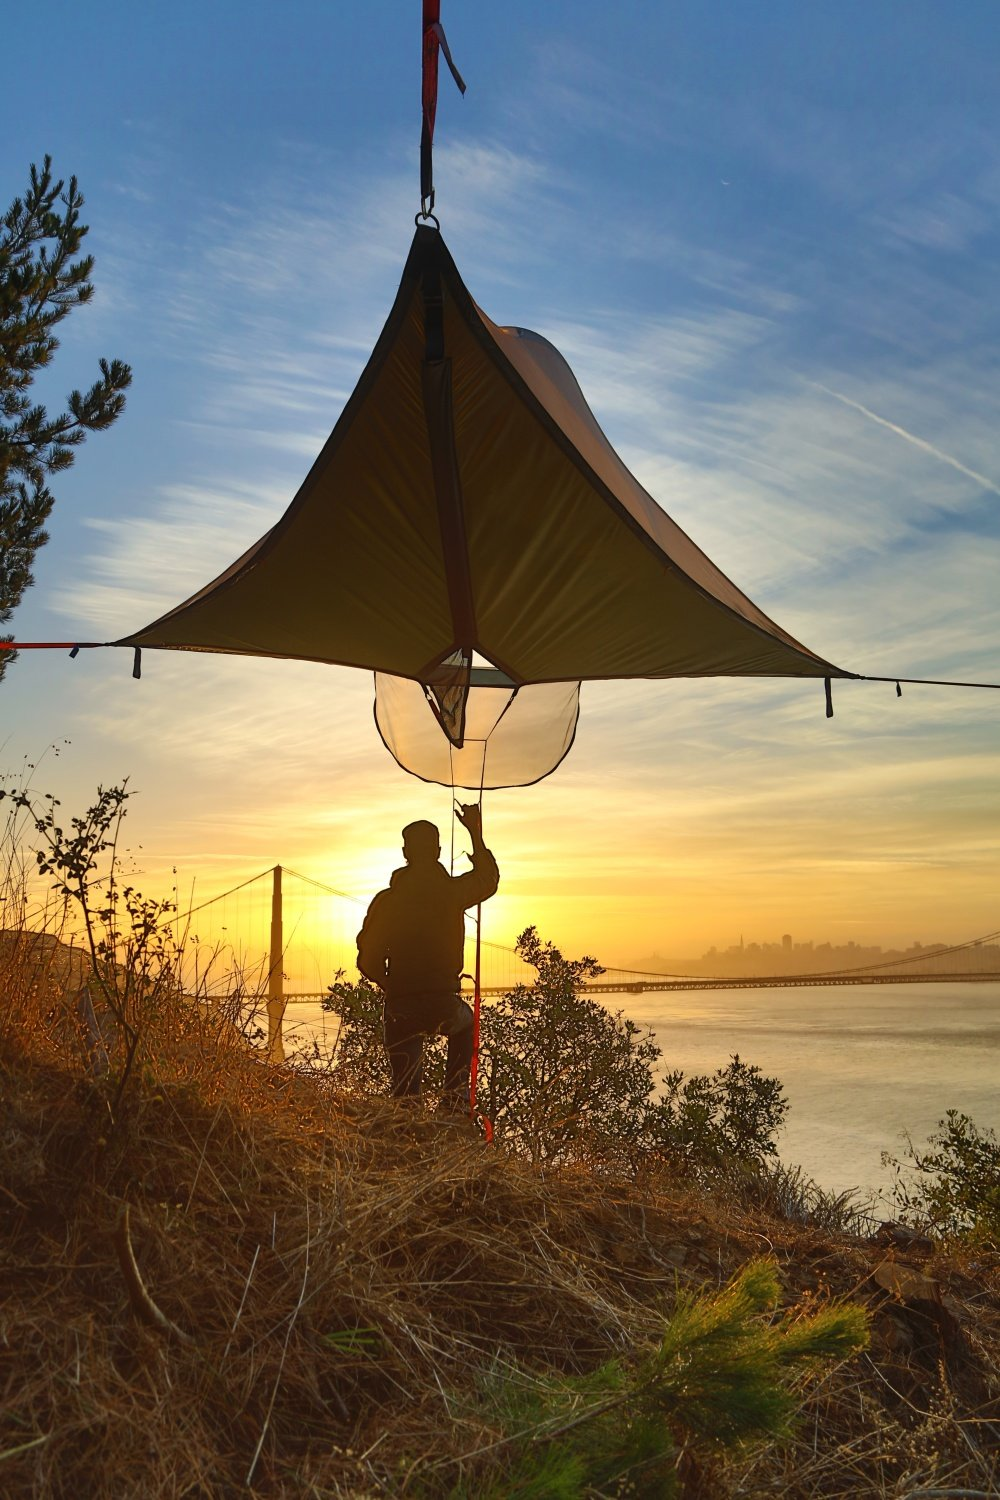 Tentsile Stingray Tree Tent Unique Portable Treehouse